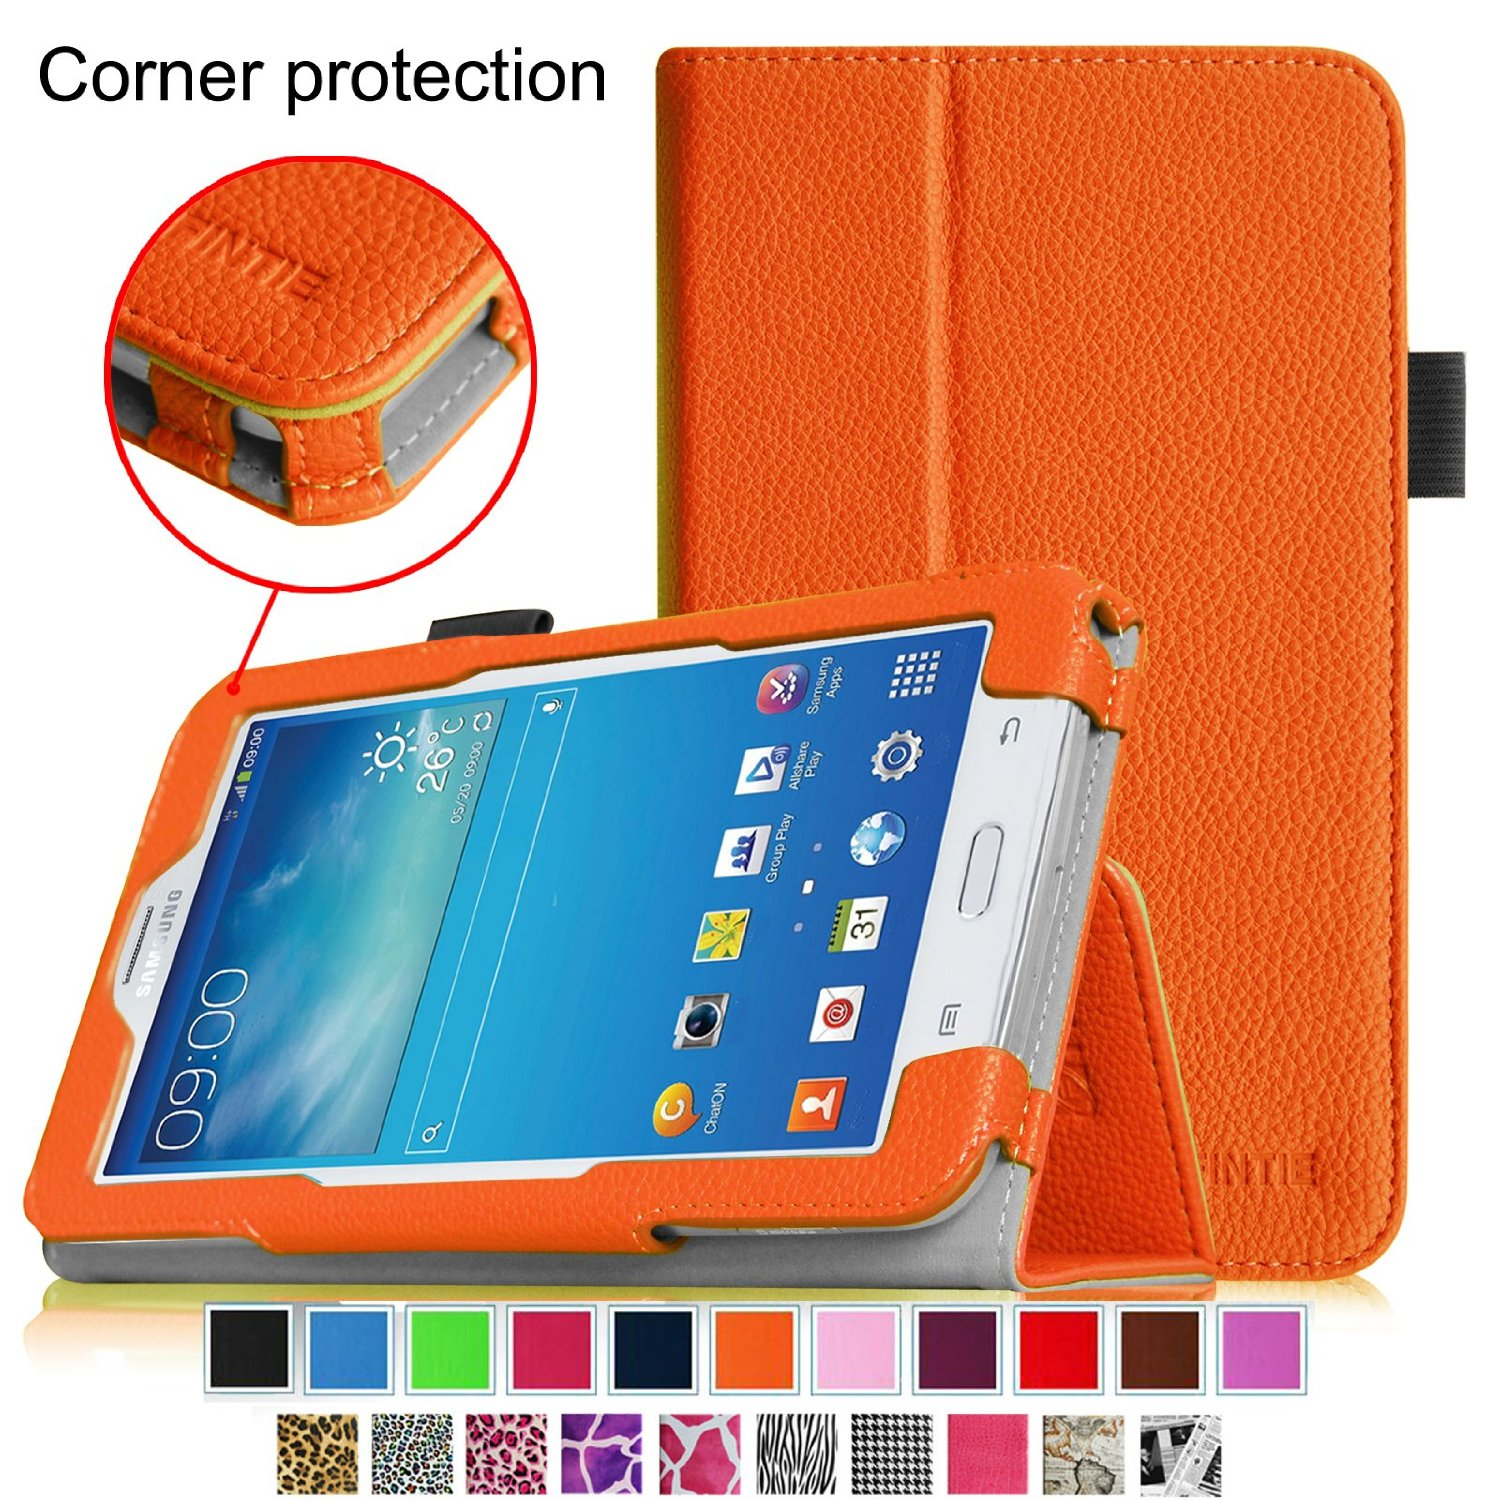 7db62e33f90 Top 8 Best Samsung Galaxy Tab E Lite 7.0 Cases And Covers